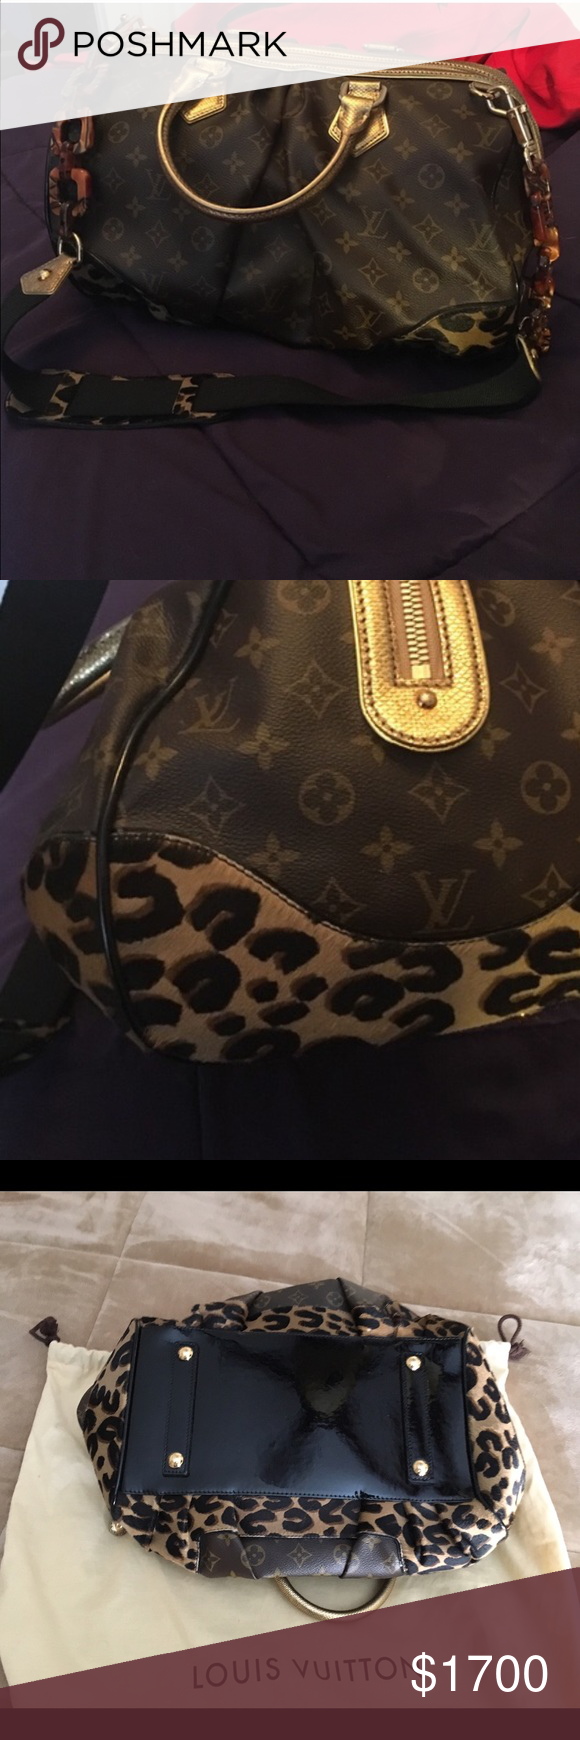 """100% Authentic LV Monogram Leopard Stephen Bag Unique bag with optional cross body strap. Original LV monogram print with patten leather bottom and gold Karung water snake trim. Leopard print calf hair. In excellent shape. Comes with dust bag. 15"""" Height 9"""" Depth(wideness)  5.25"""" drop(handles) just looking for a new home (: Louis Vuitton Bags Crossbody Bags"""